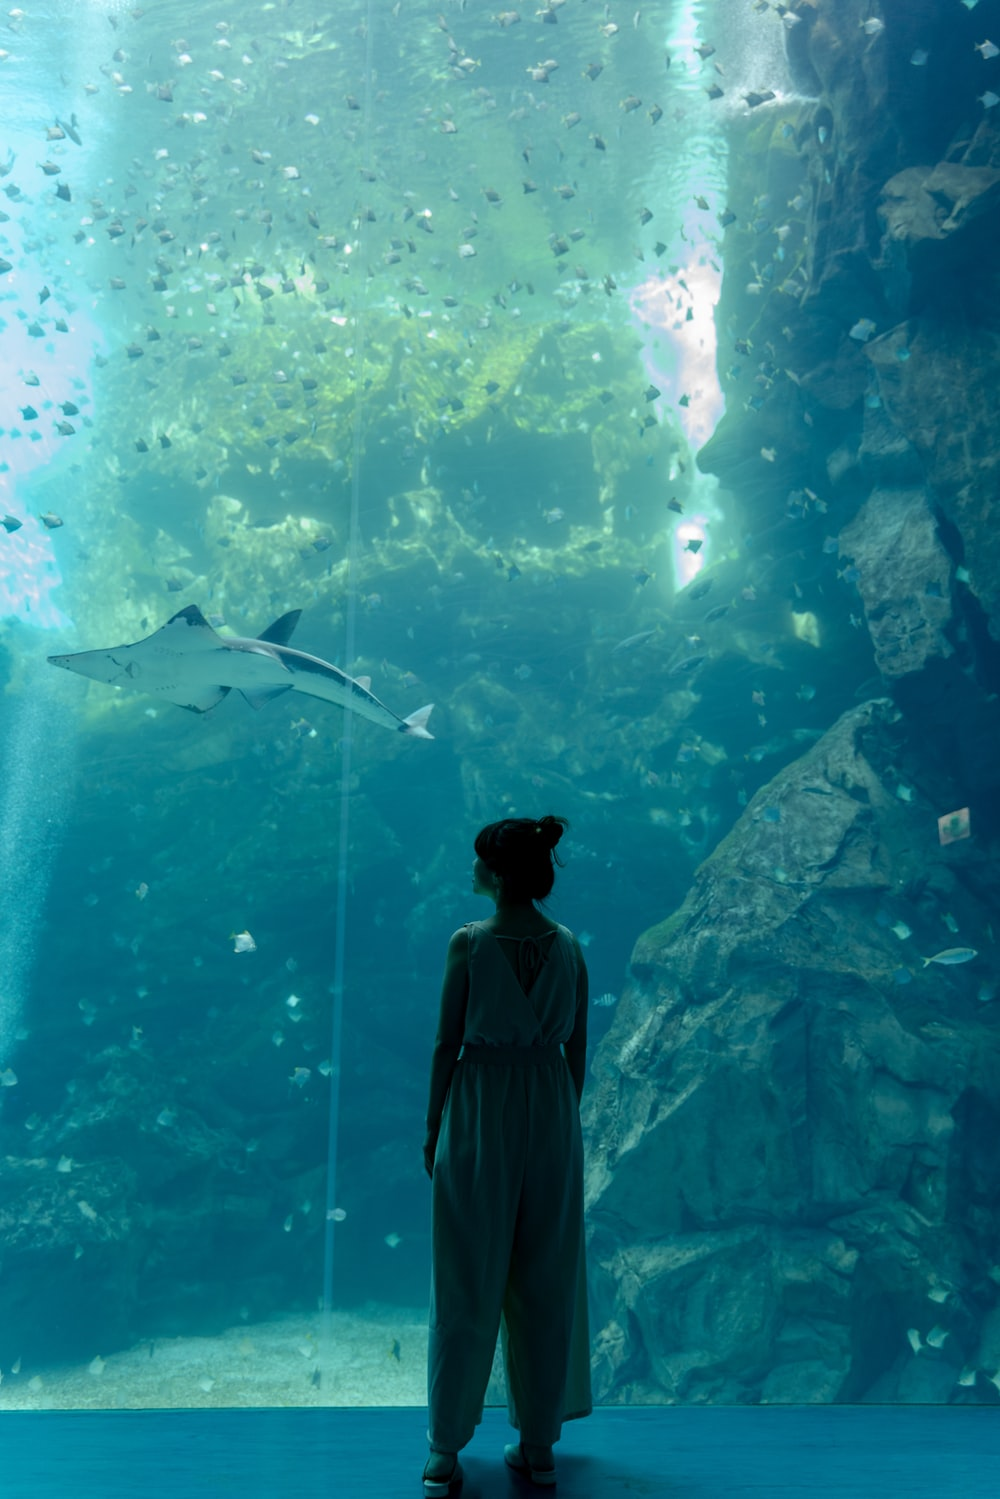 man in black jacket standing in front of aquarium with fishes